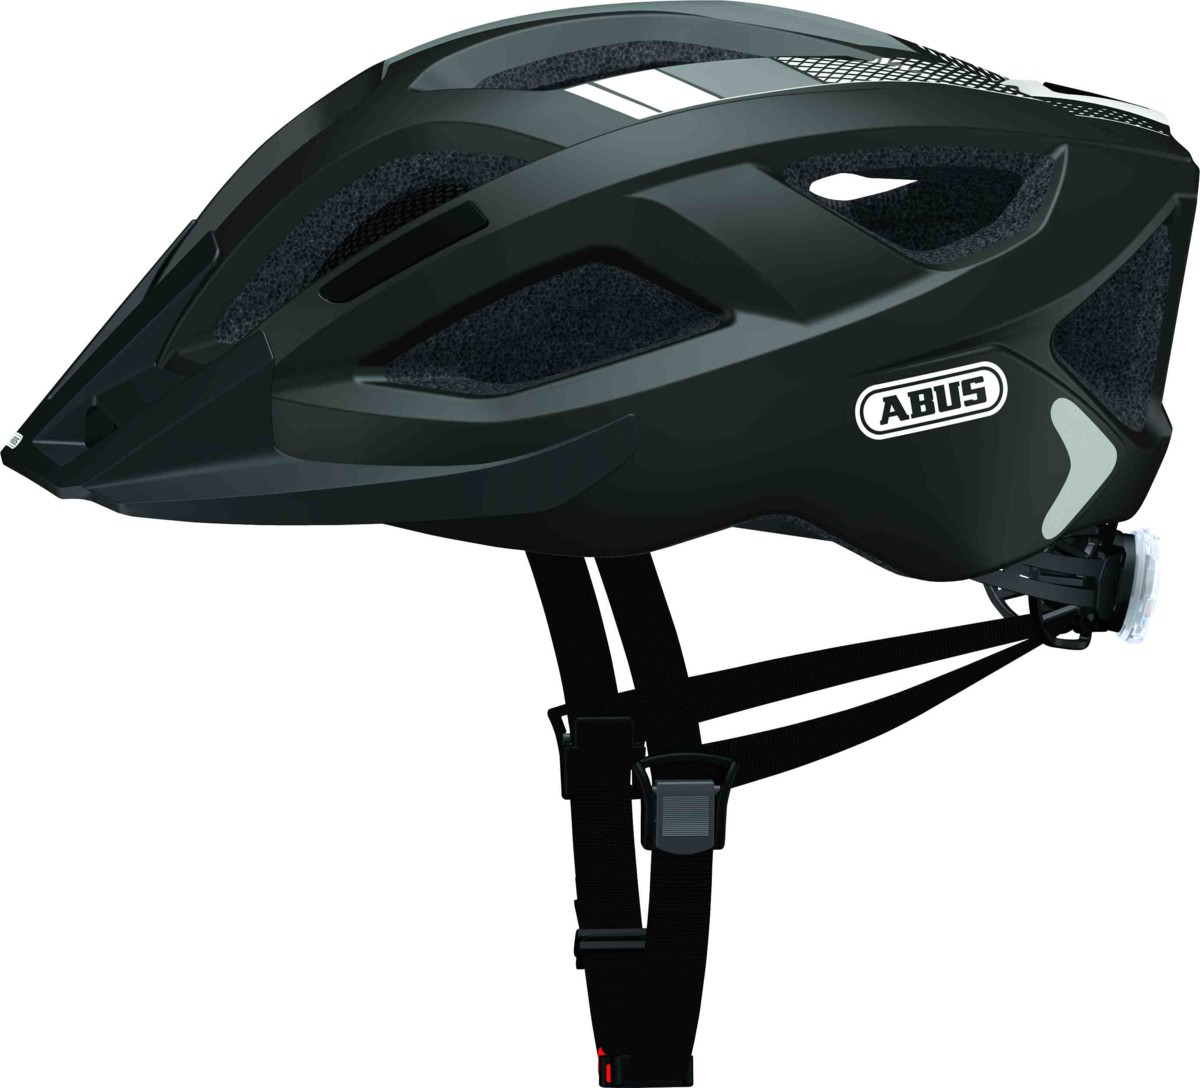 Aduro 2.0 race black - Aduro 2.0 race black M